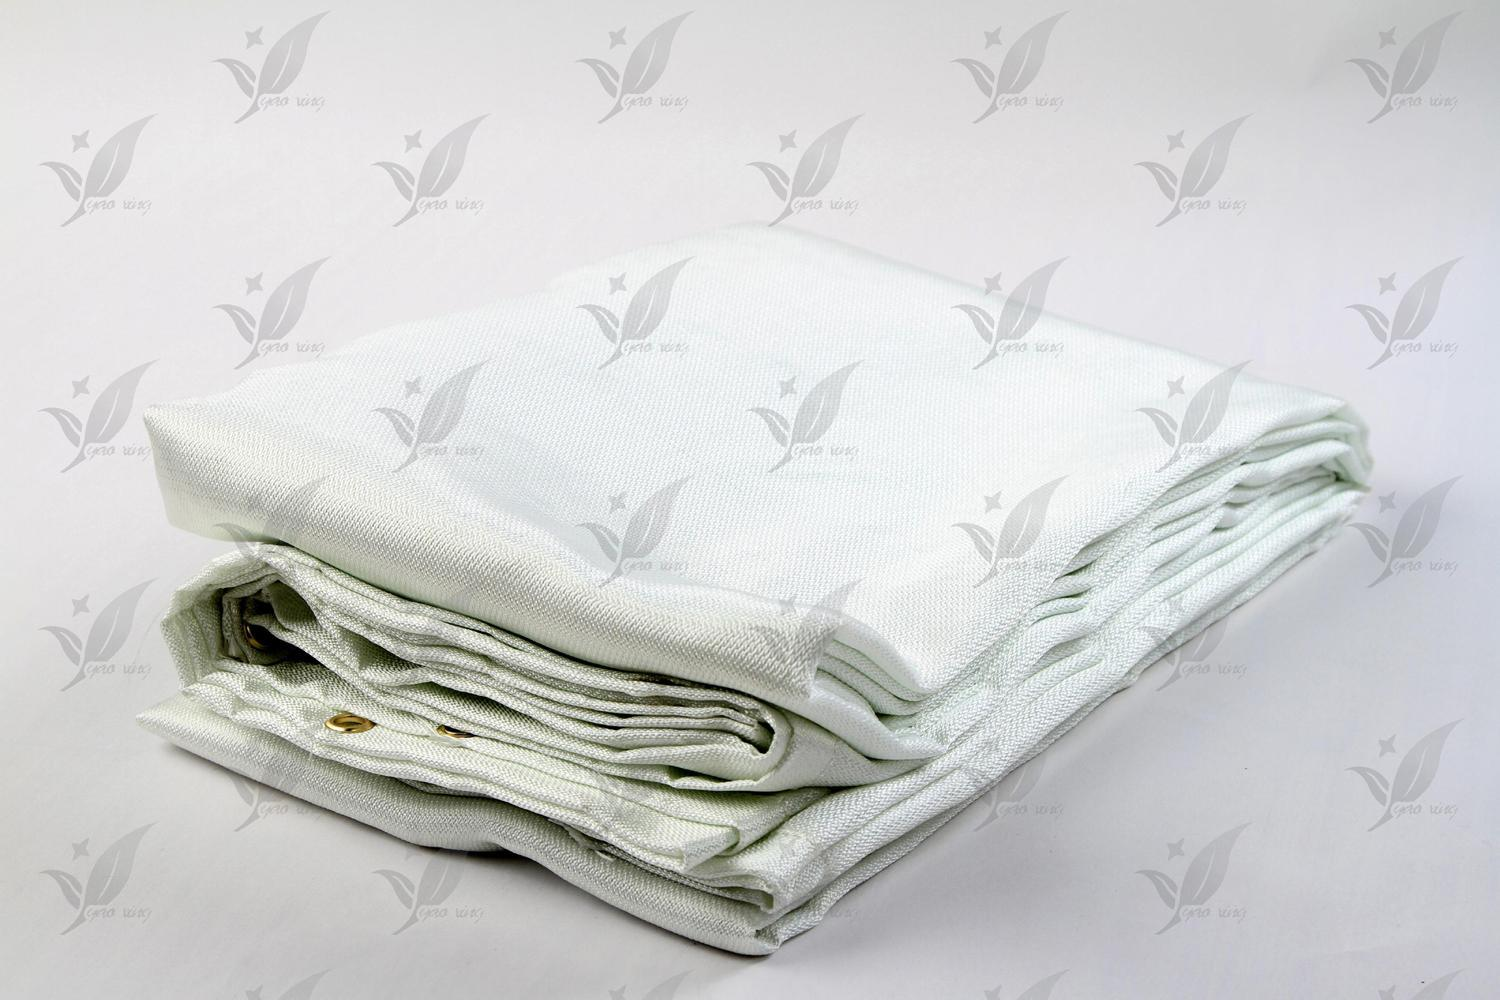 Heat-Resistant Fire Fiberglass Fabric Blanket